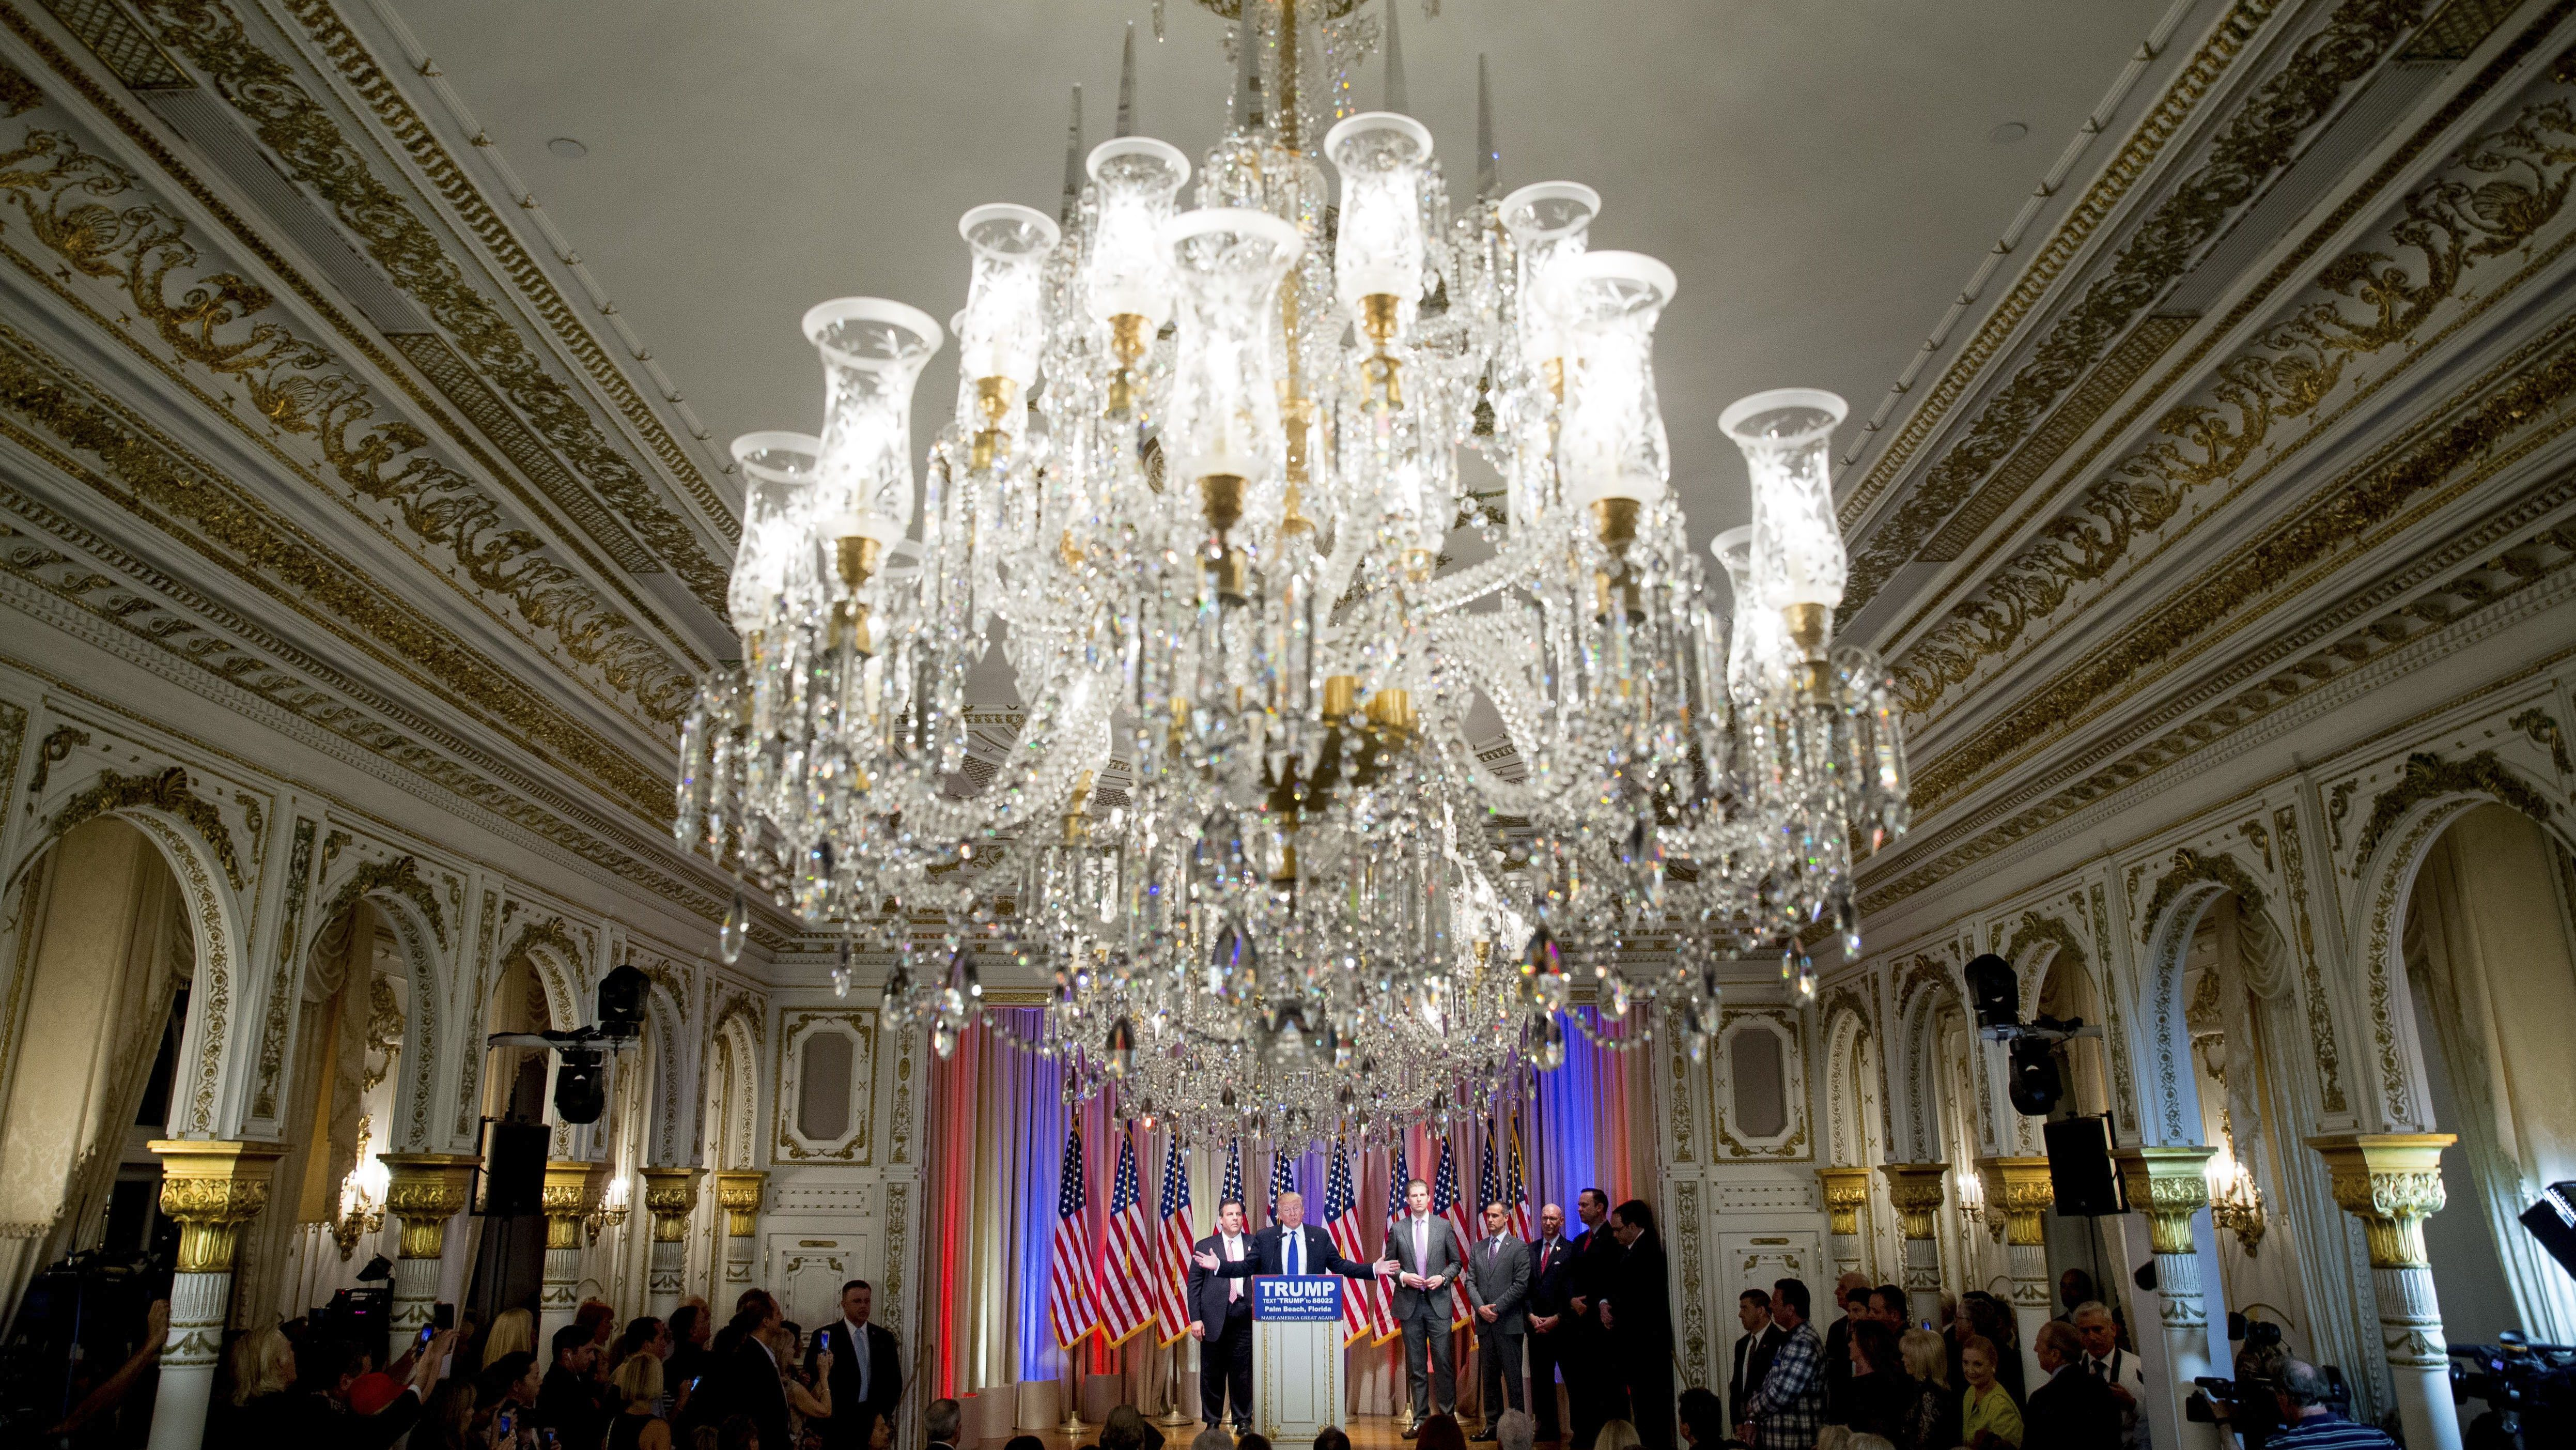 Donald Trump speaks in the Mar-a-Lago golf clubs palatial ballroom